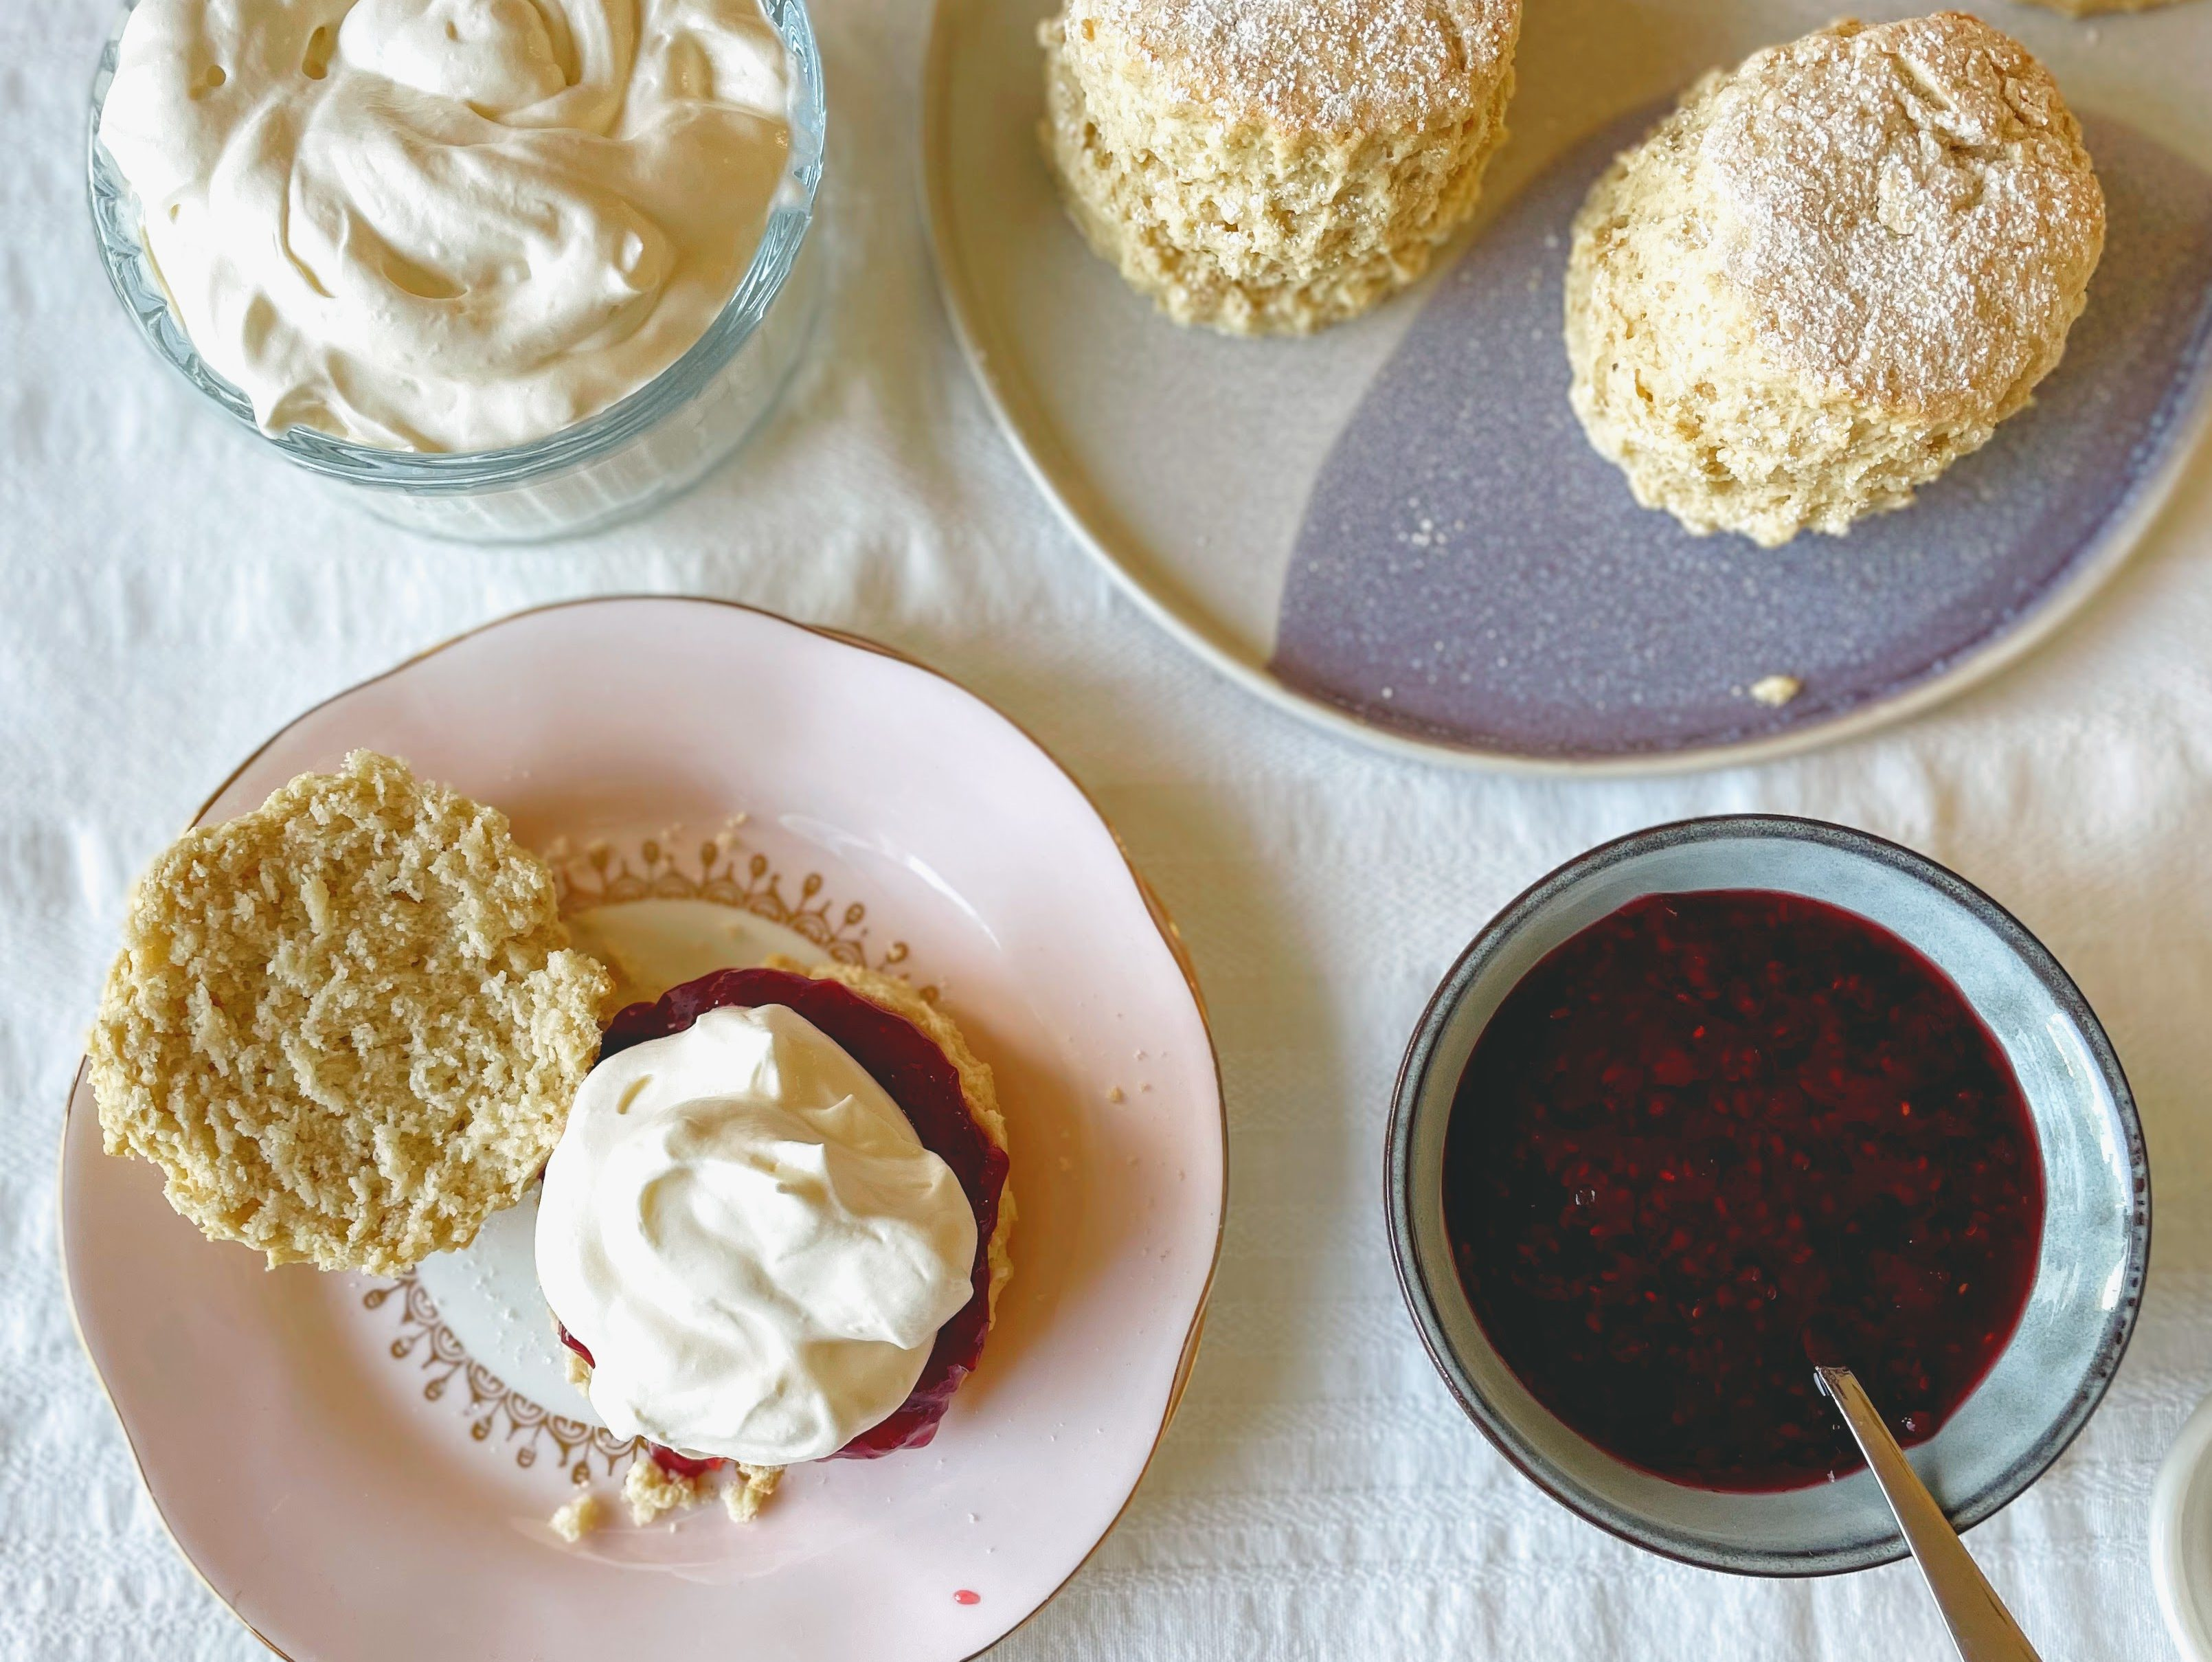 In the bottom left-hand corner of the picture there is a pale pink plate with a scone that has been split in two. One half reveals the soft, light crumb of the scone, and the other is smothered with crimson red raspberry jam and piled with whipped cream. There is a small bowl full of raspberry jam in the bottom right hand corner, and a dish of pillowy whipped cream in the top left. In the top right there is a blue patterned platter with the remaining scones, toweringly tall and with a little dusting of icing sugar on top.